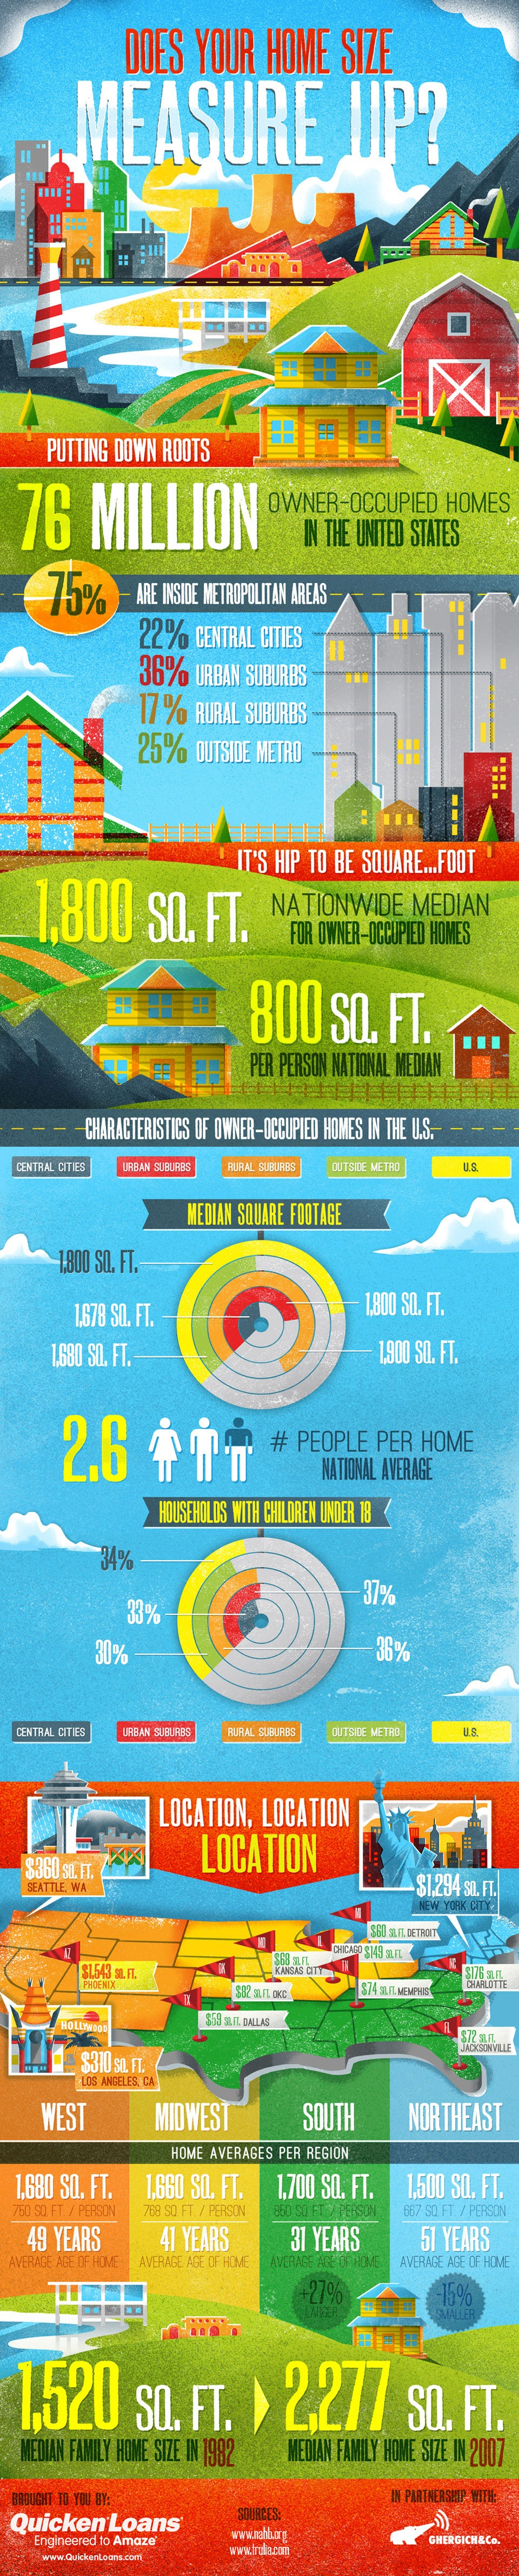 home size matters Does Your Home Size Measure Up?